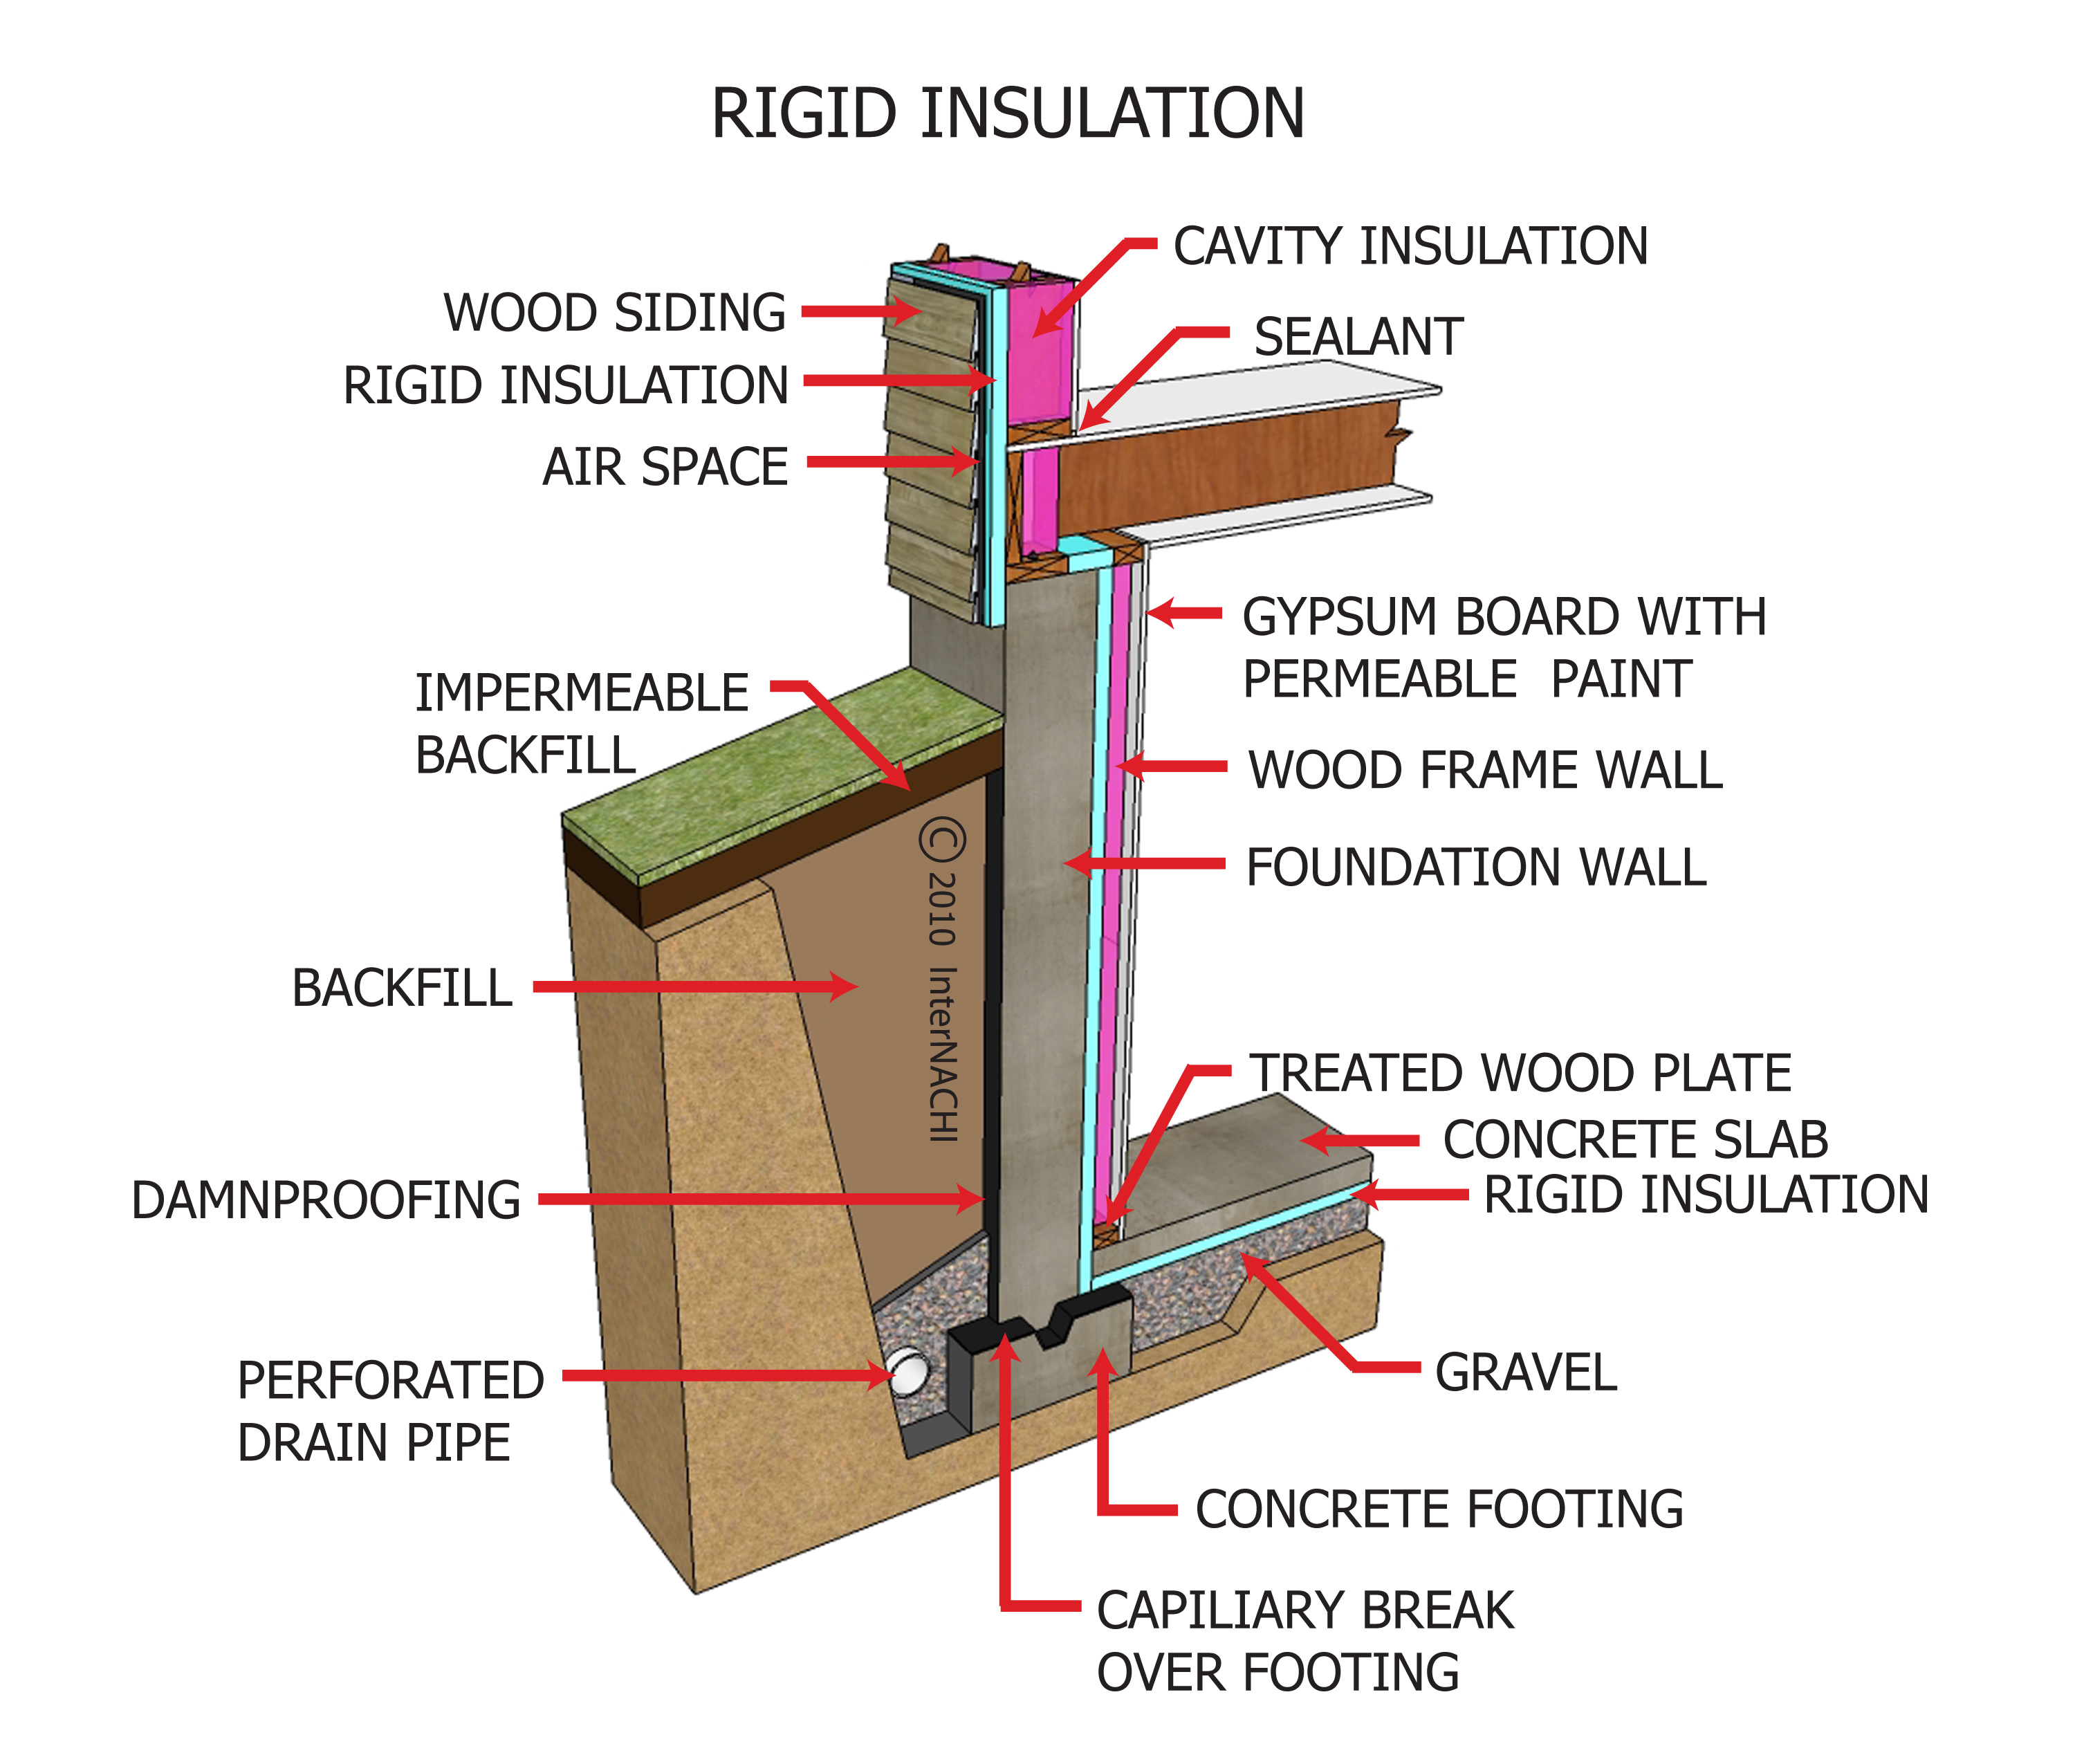 Index Of Gallery Images Exterior Wood Siding